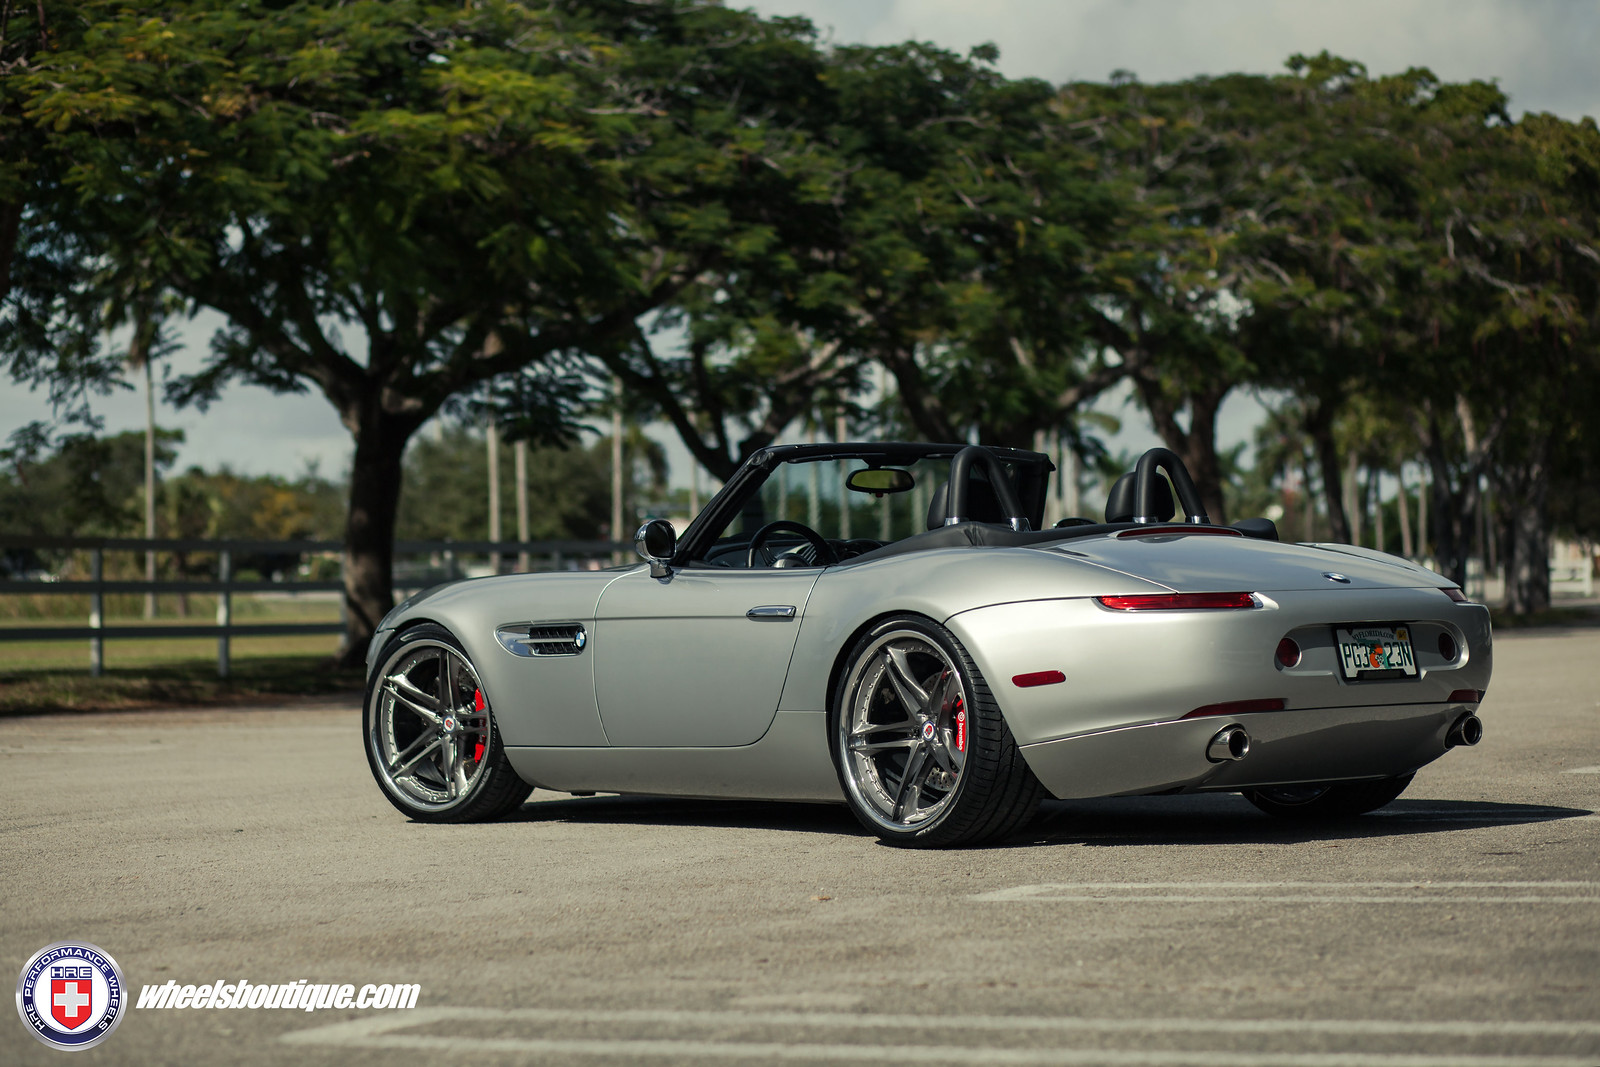 James Bond Eat Your Heart Out Wheels Boutique S Bmw Z8